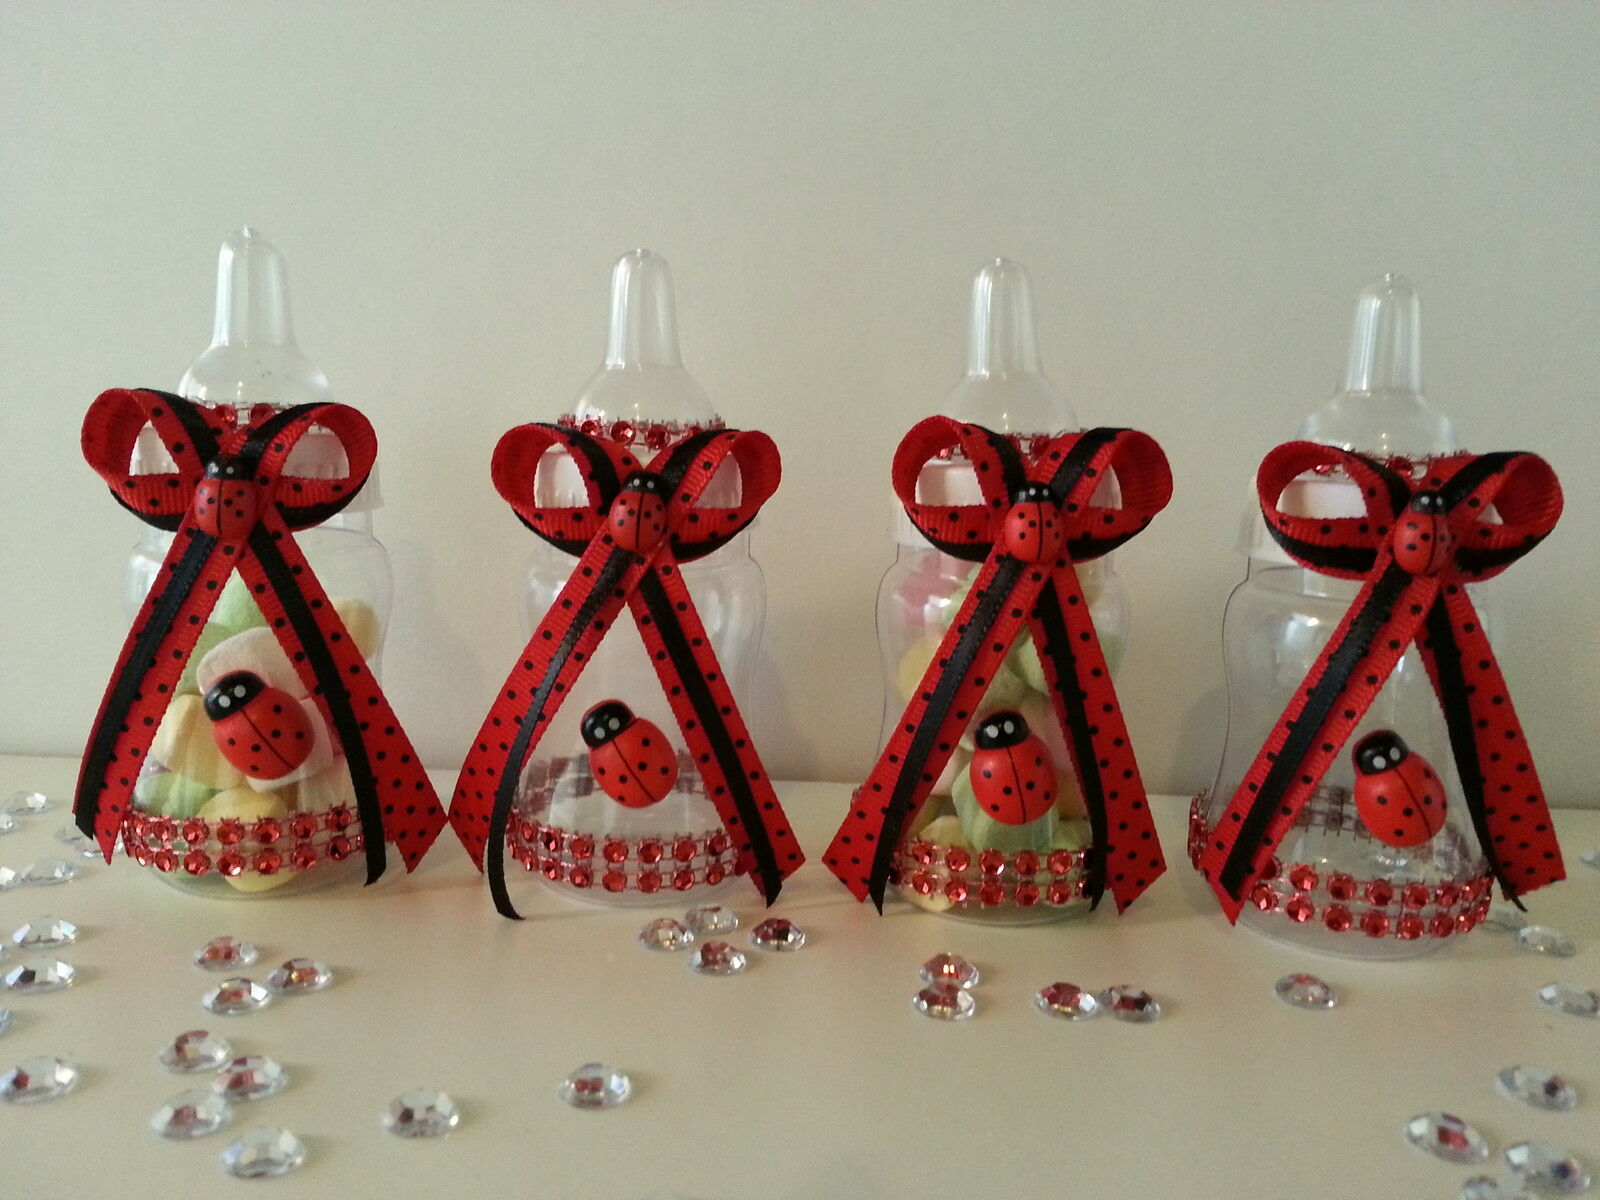 12 ladybug pacifier necklaces for games prizes favors baby shower